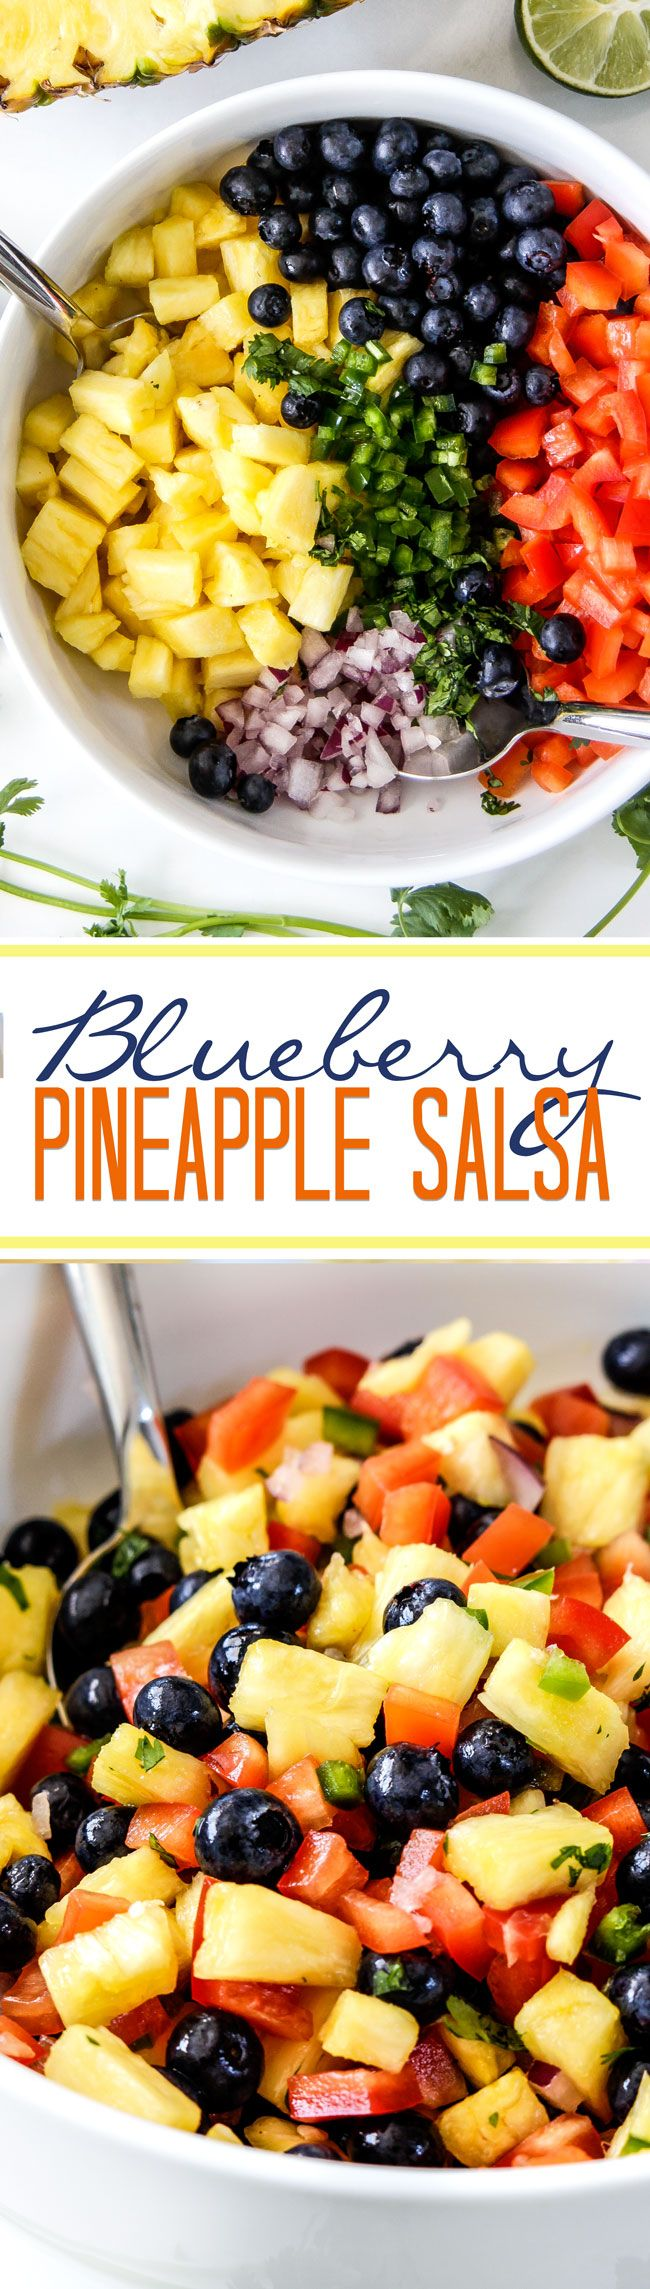 Refreshing sweet, bright Blueberry Pineapple Salsa is addictingly delicious with chips, on chicken, fish, tacos or just a spoon! This easy salsa makes everything better! #salsa #pineapple #blueberry #fruitsalsa #pineapplesalsa